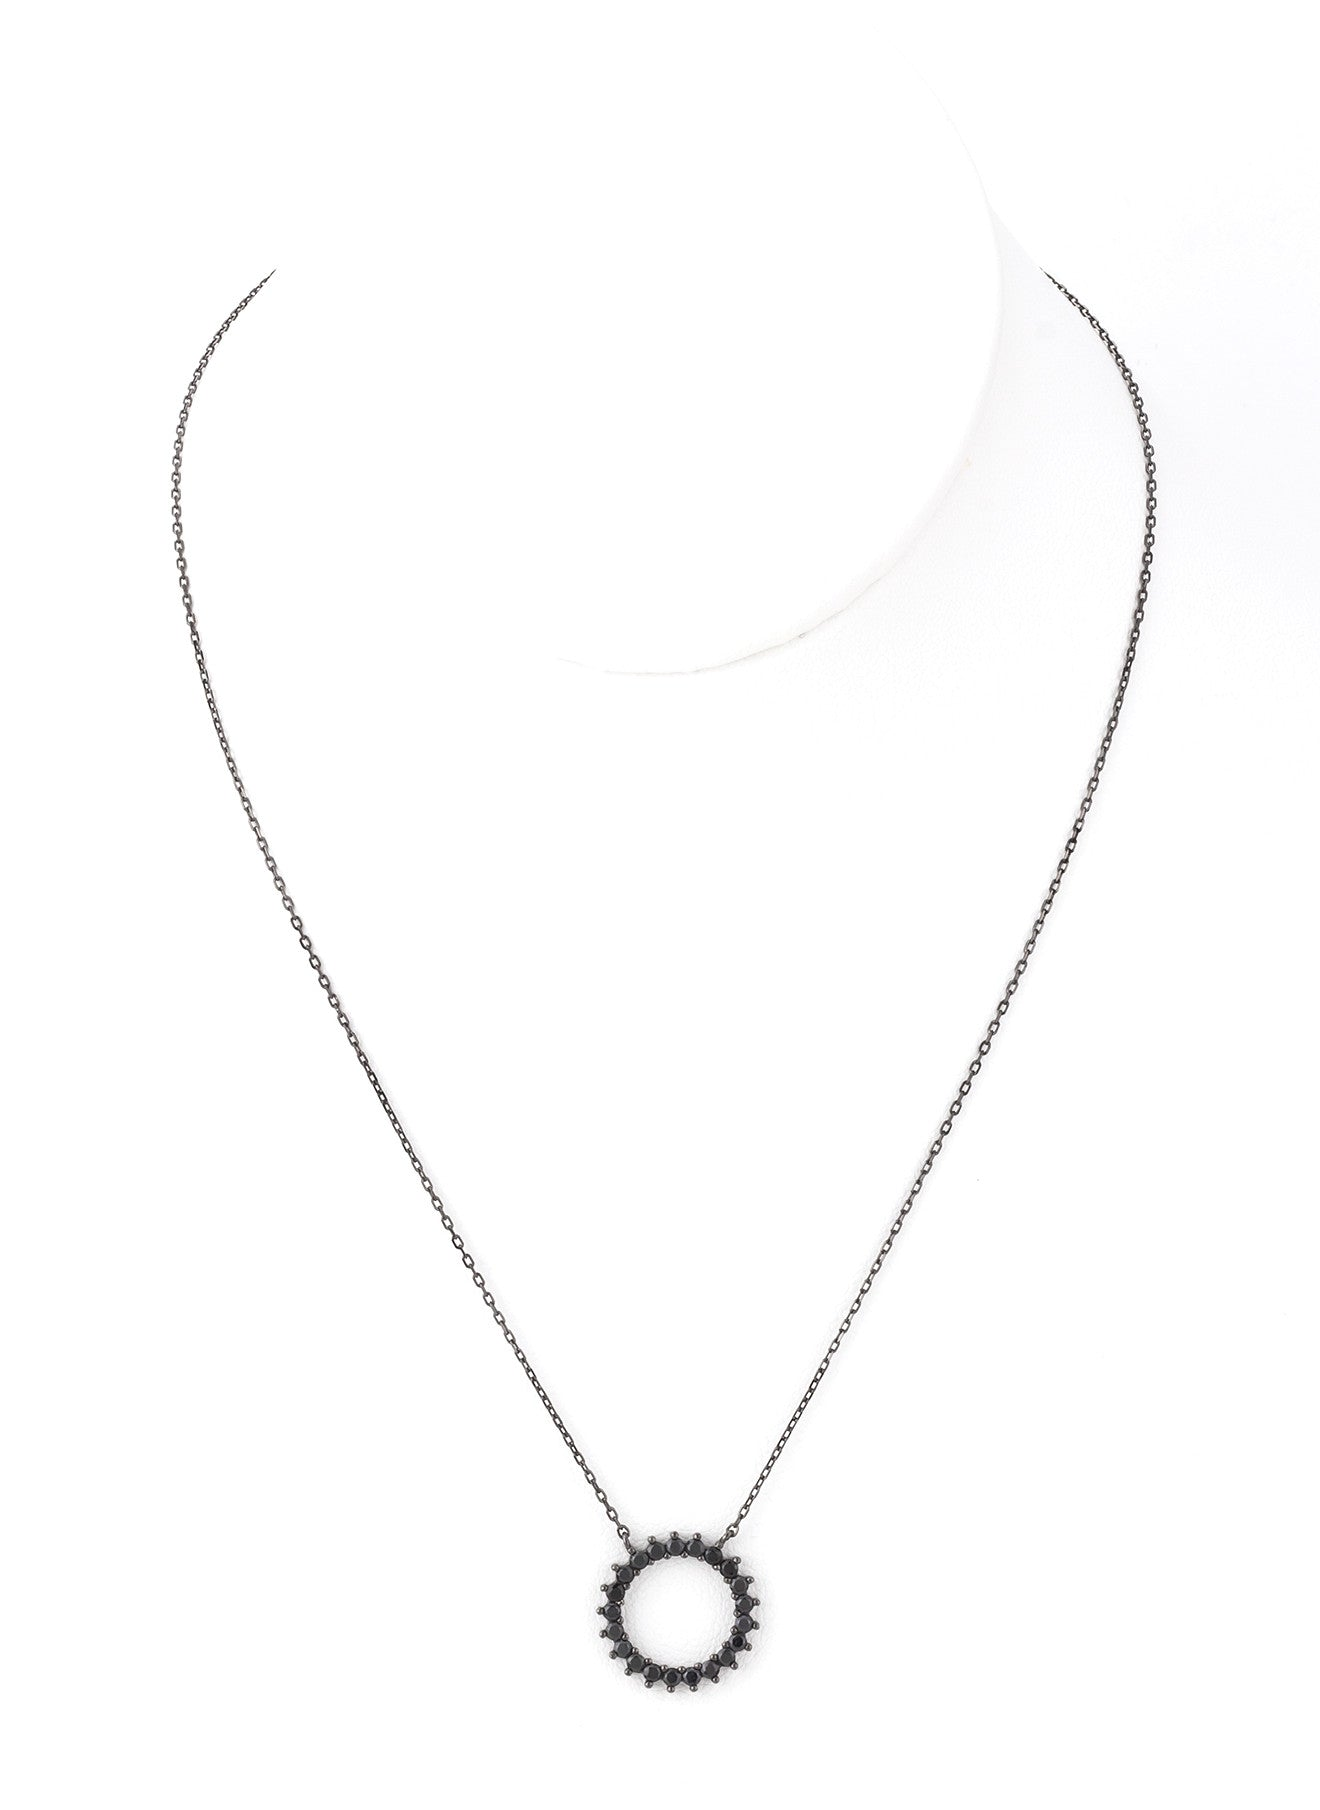 Black Circle CZ Pendant Necklace - Silver 925